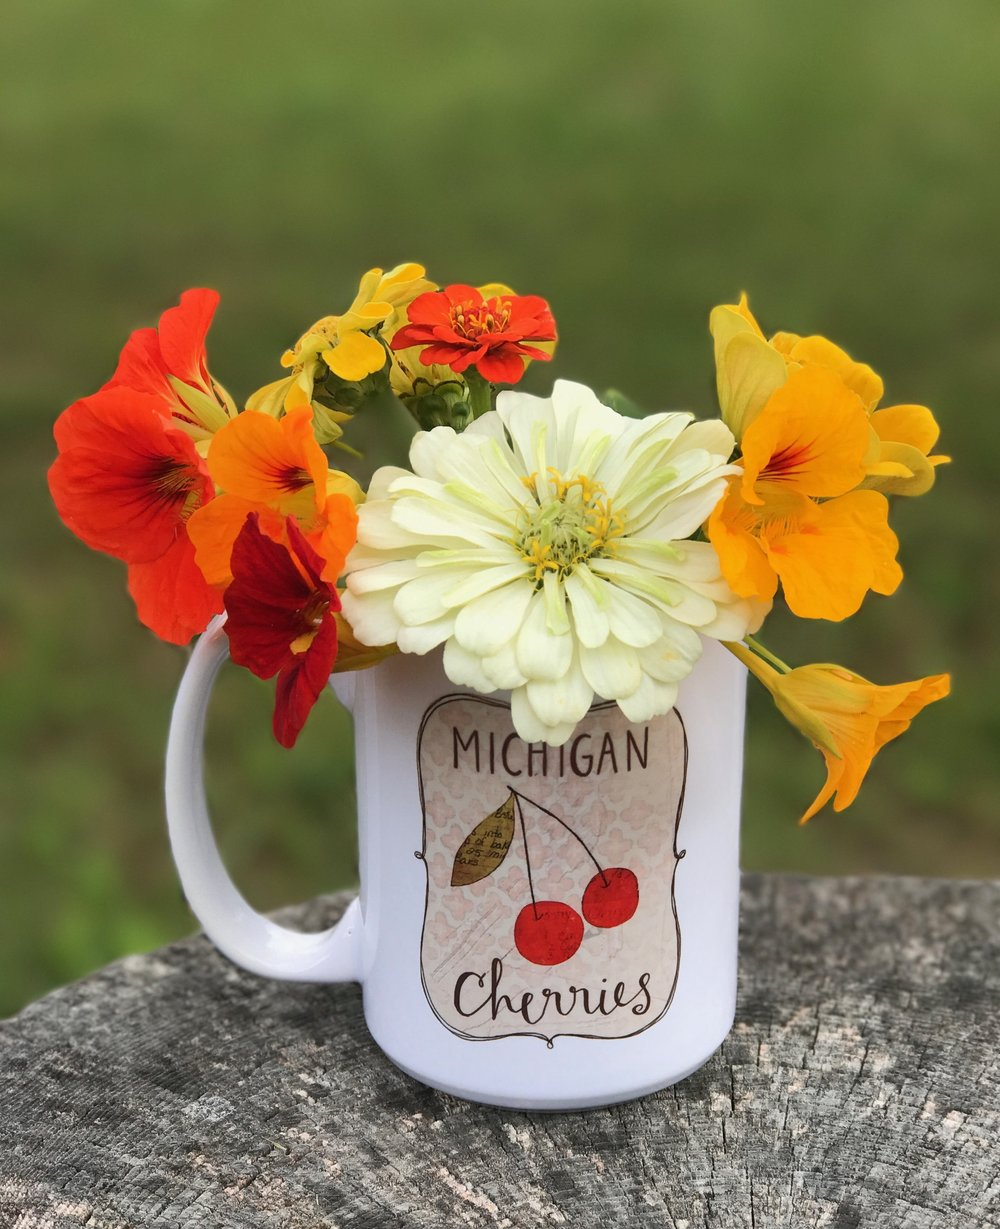 Stop into Two Fish Gallery to snag your own Michigan Cherries mug & to see our whole collection of Polka Dot Mitten creations